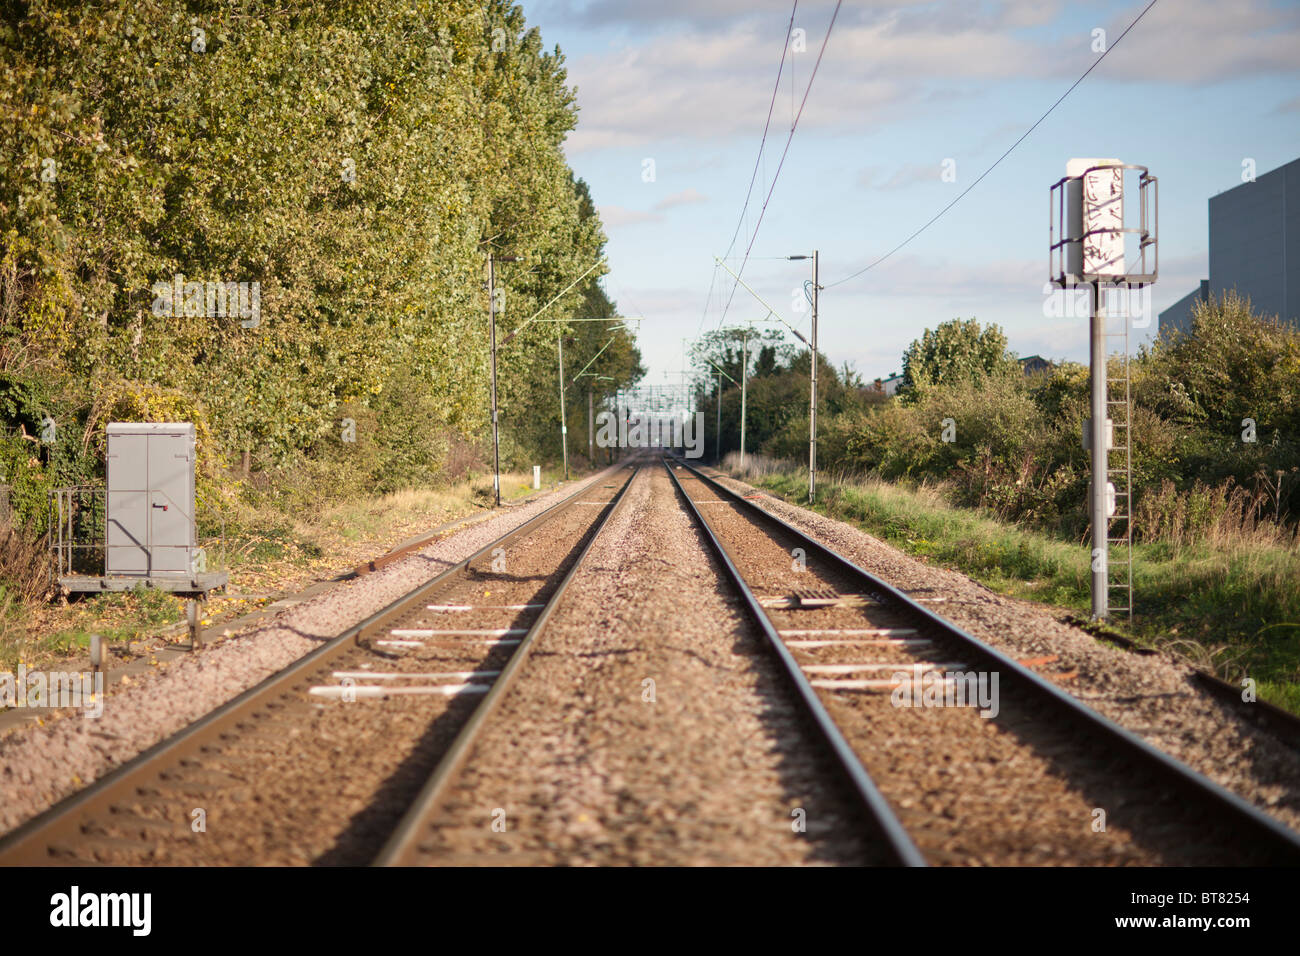 railway tracks,train lines in the distance,signals,sleepers,overhead lines - Stock Image